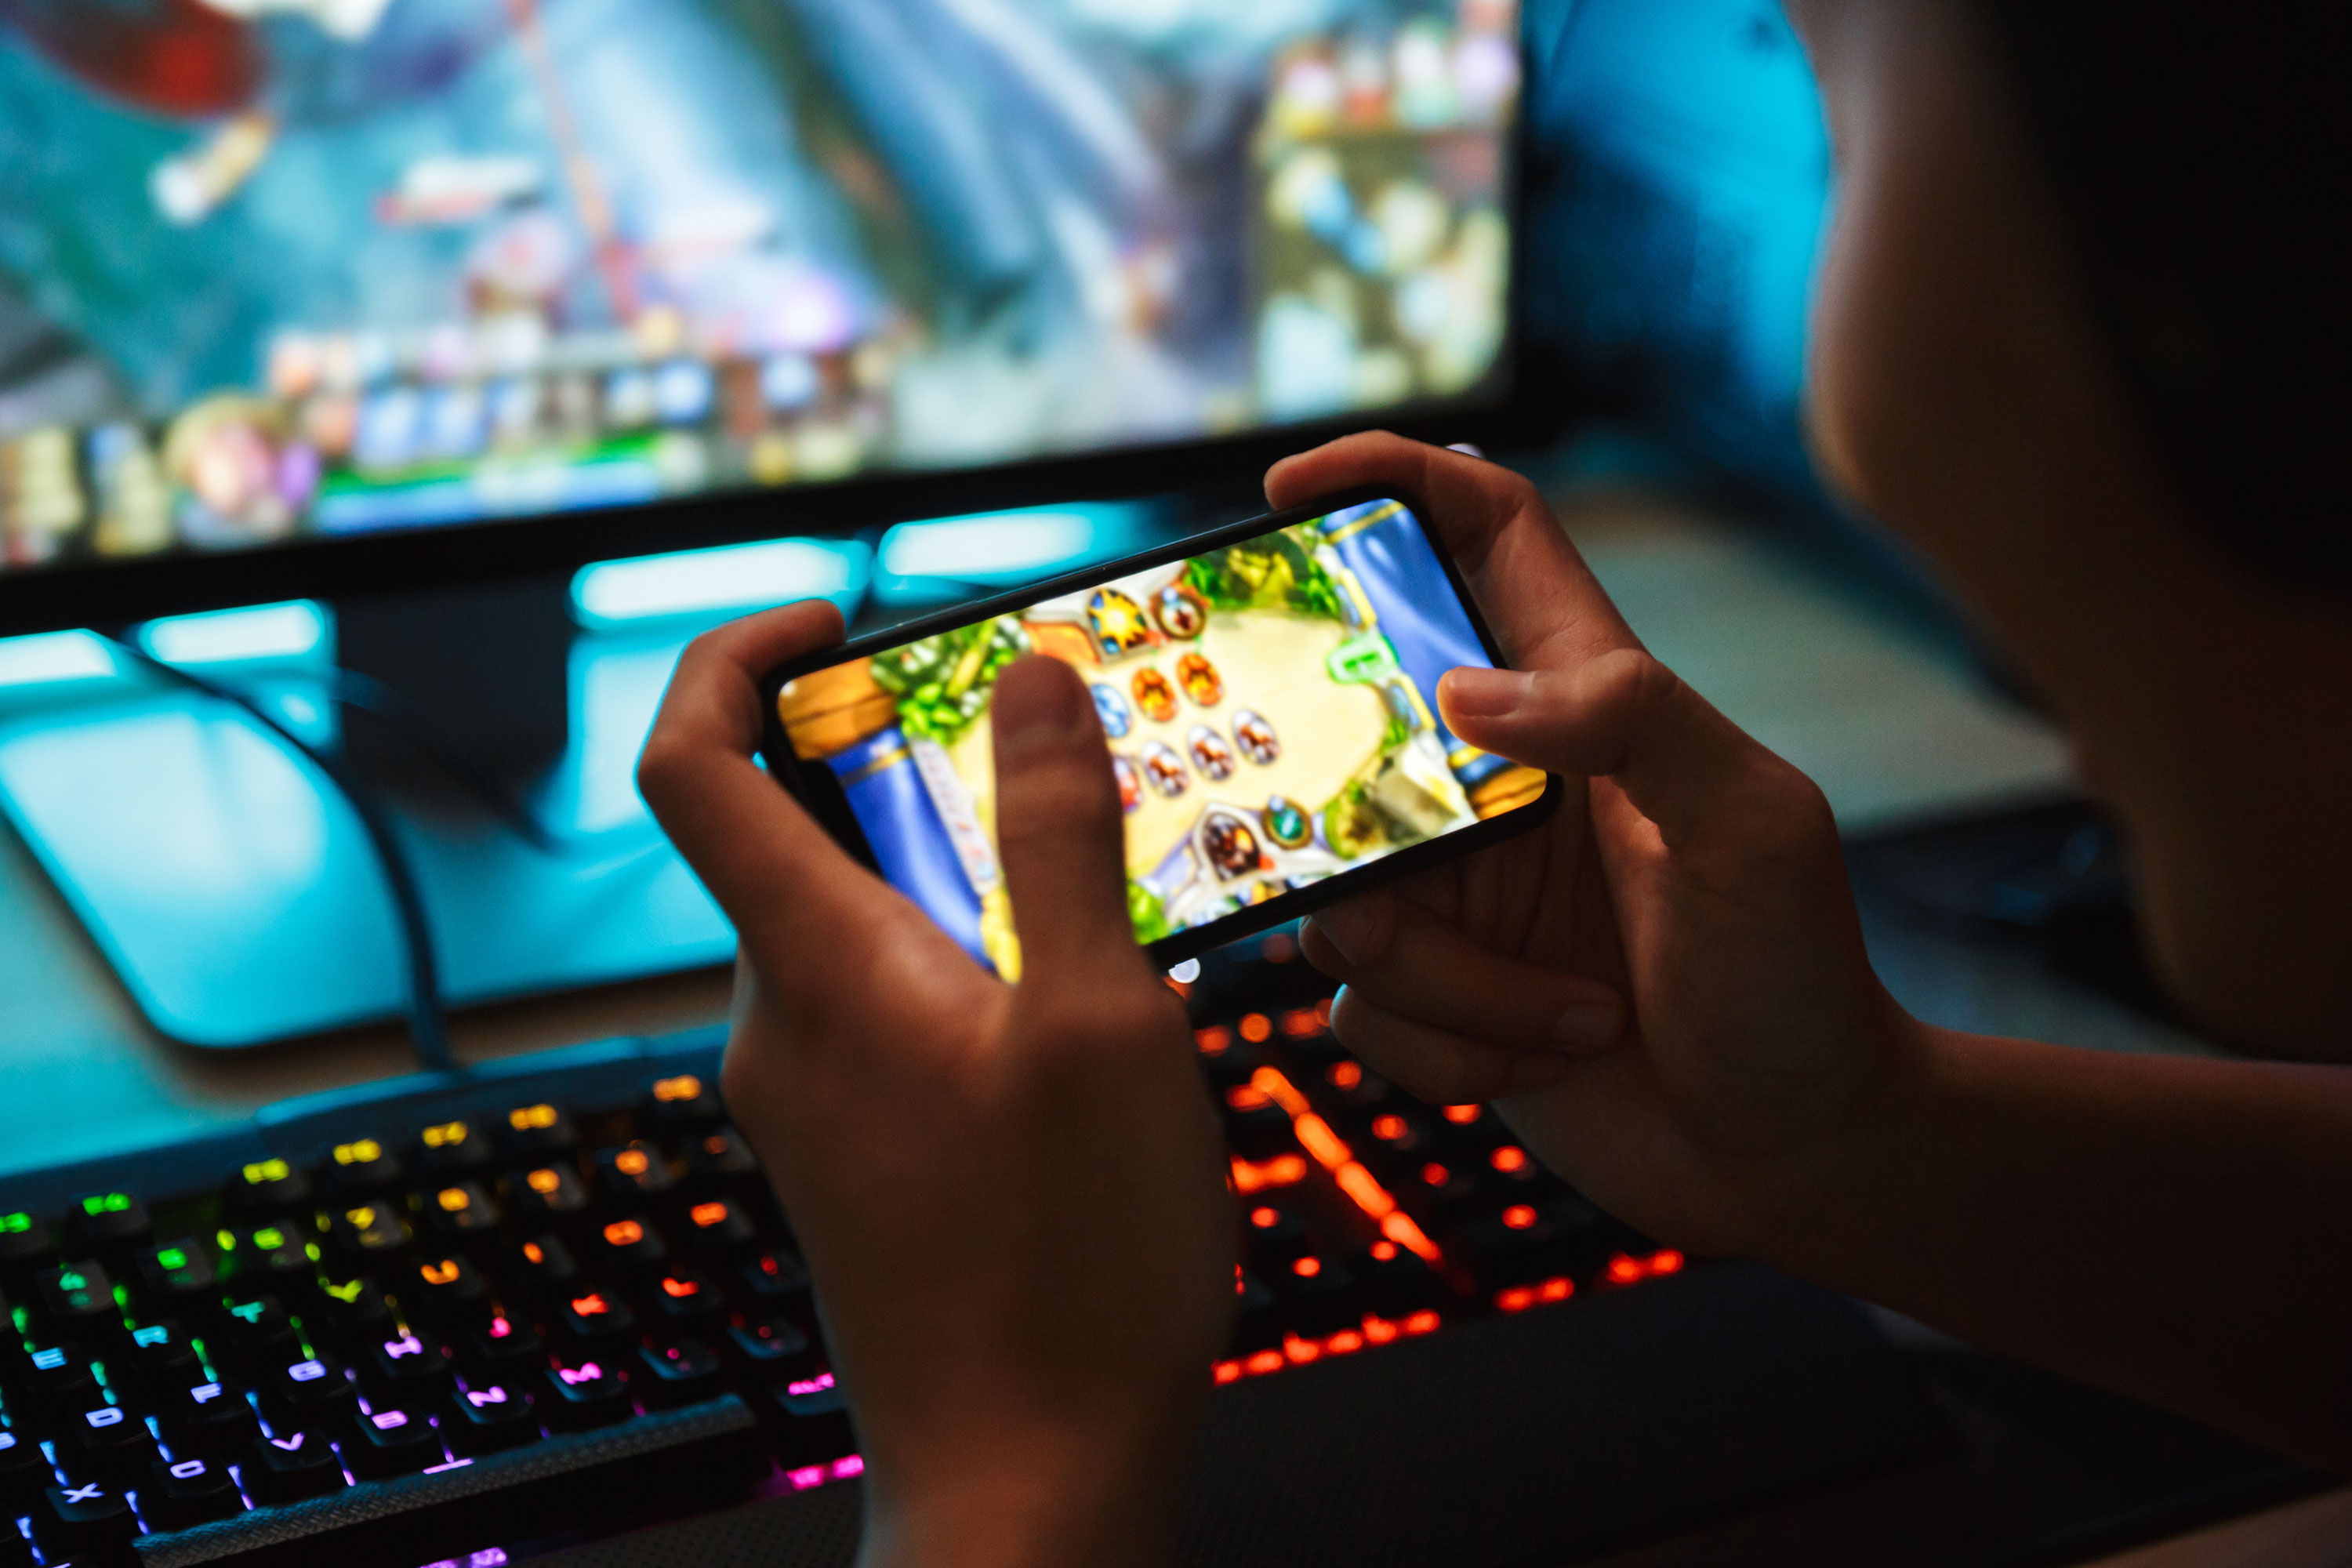 The Coolest Mobile Control Gaming Systems, WhitePreGifts, whitepregifts.com